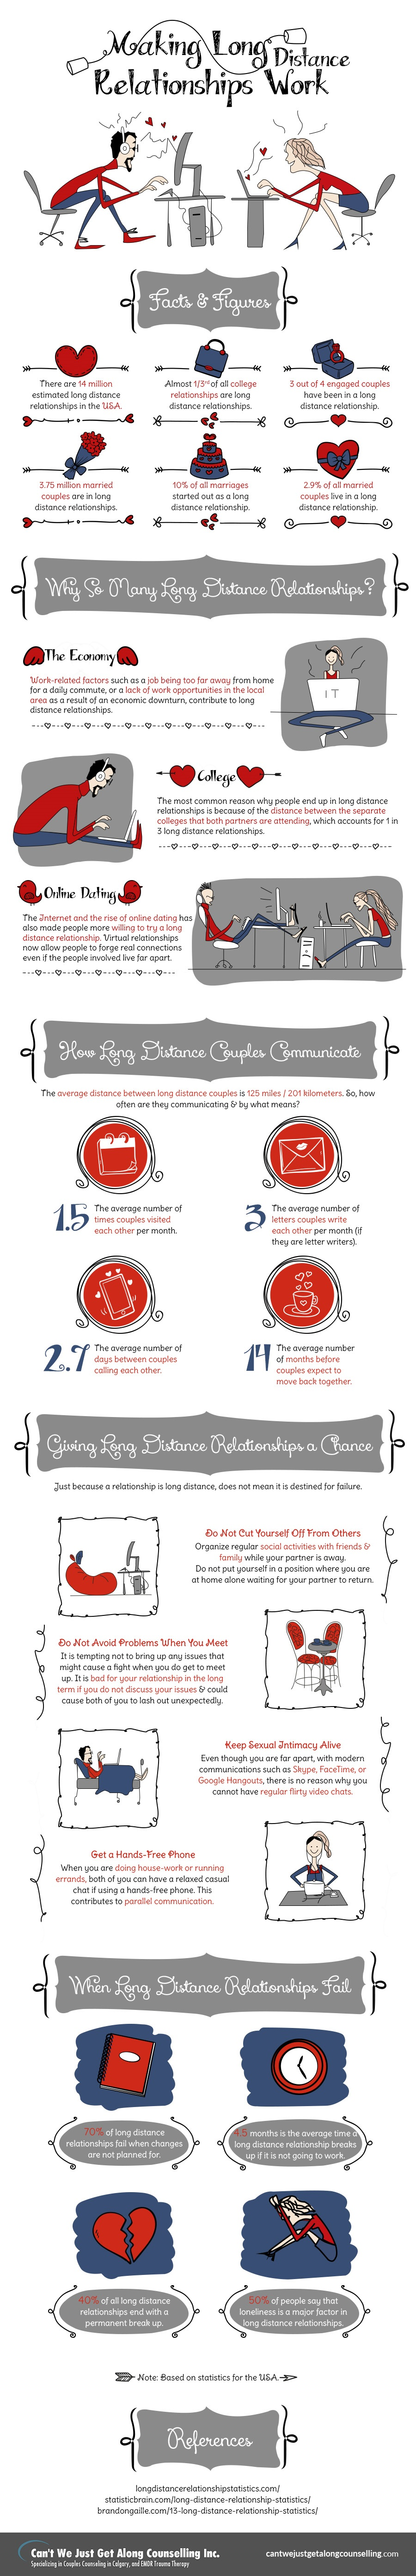 INFOGRAPHIC] How to Make a Long Distance Relationship Work - Last